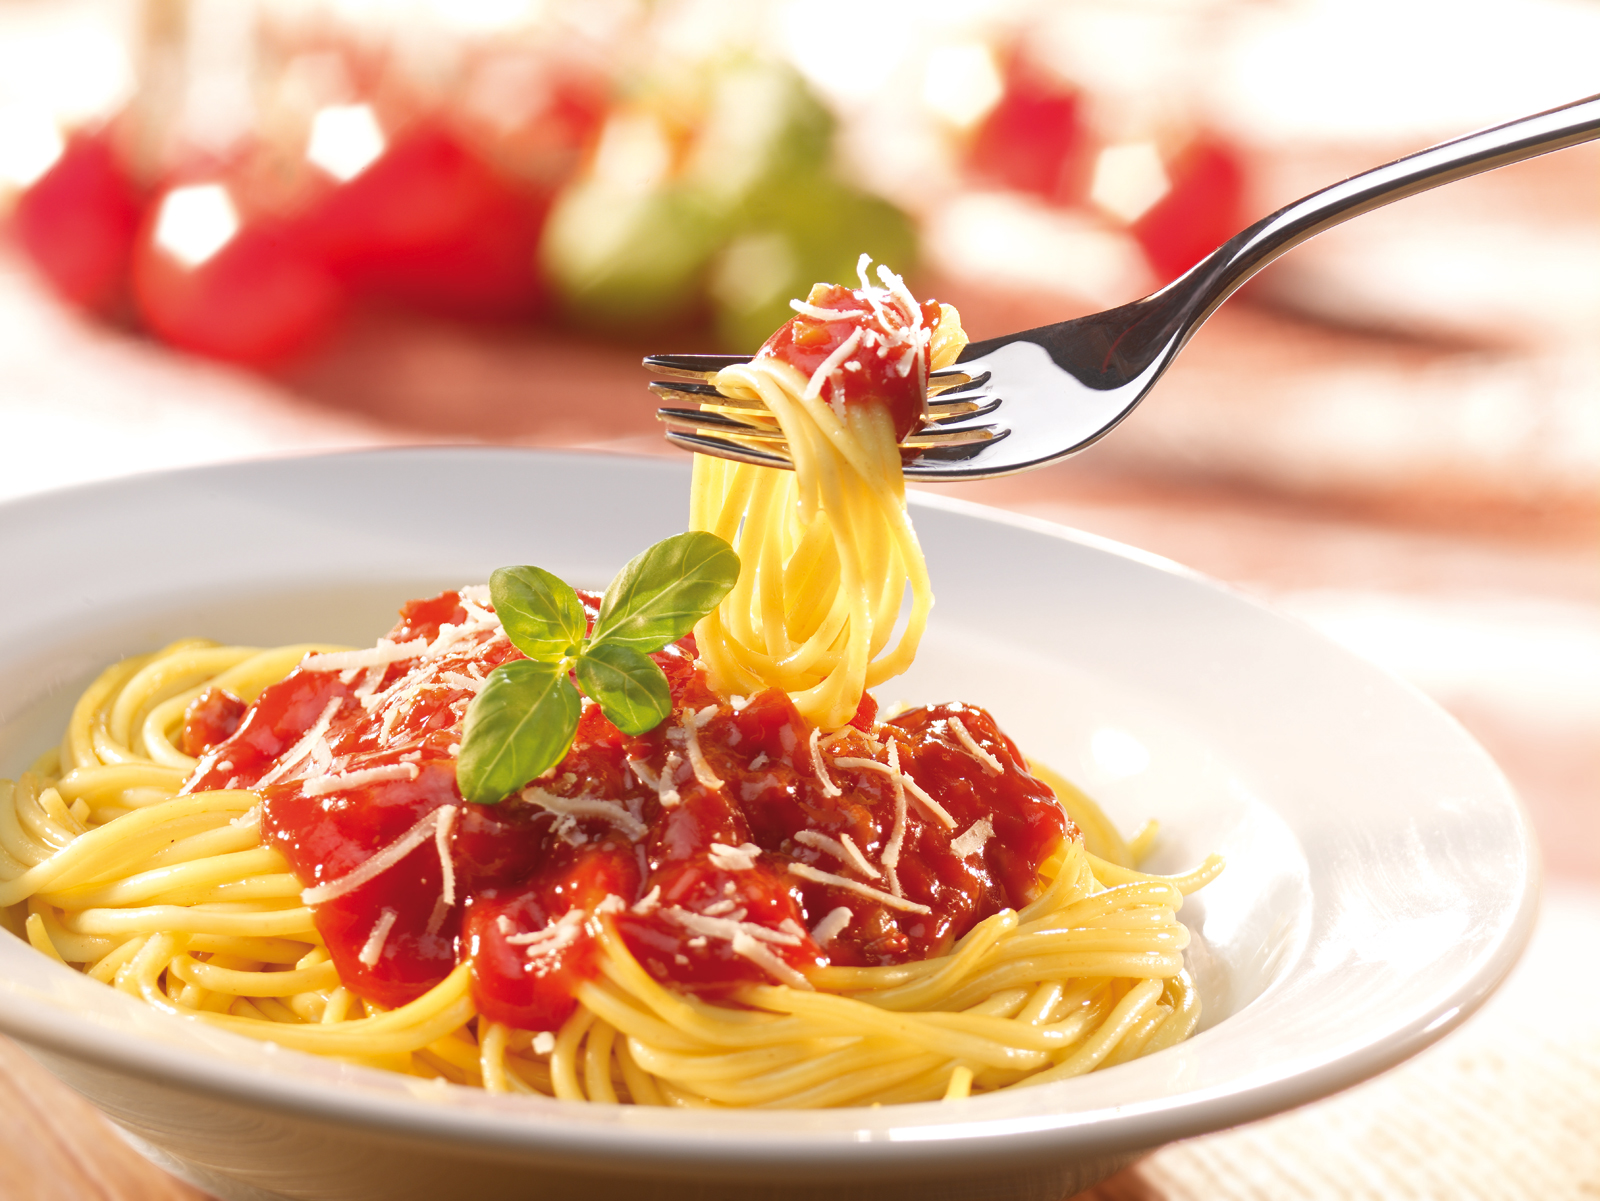 stock-photo-pasta-with-chicken-red-sweet-peppers-and-hot-parmesan-cheese-melted-served-on-white-plate-646863748.jpg